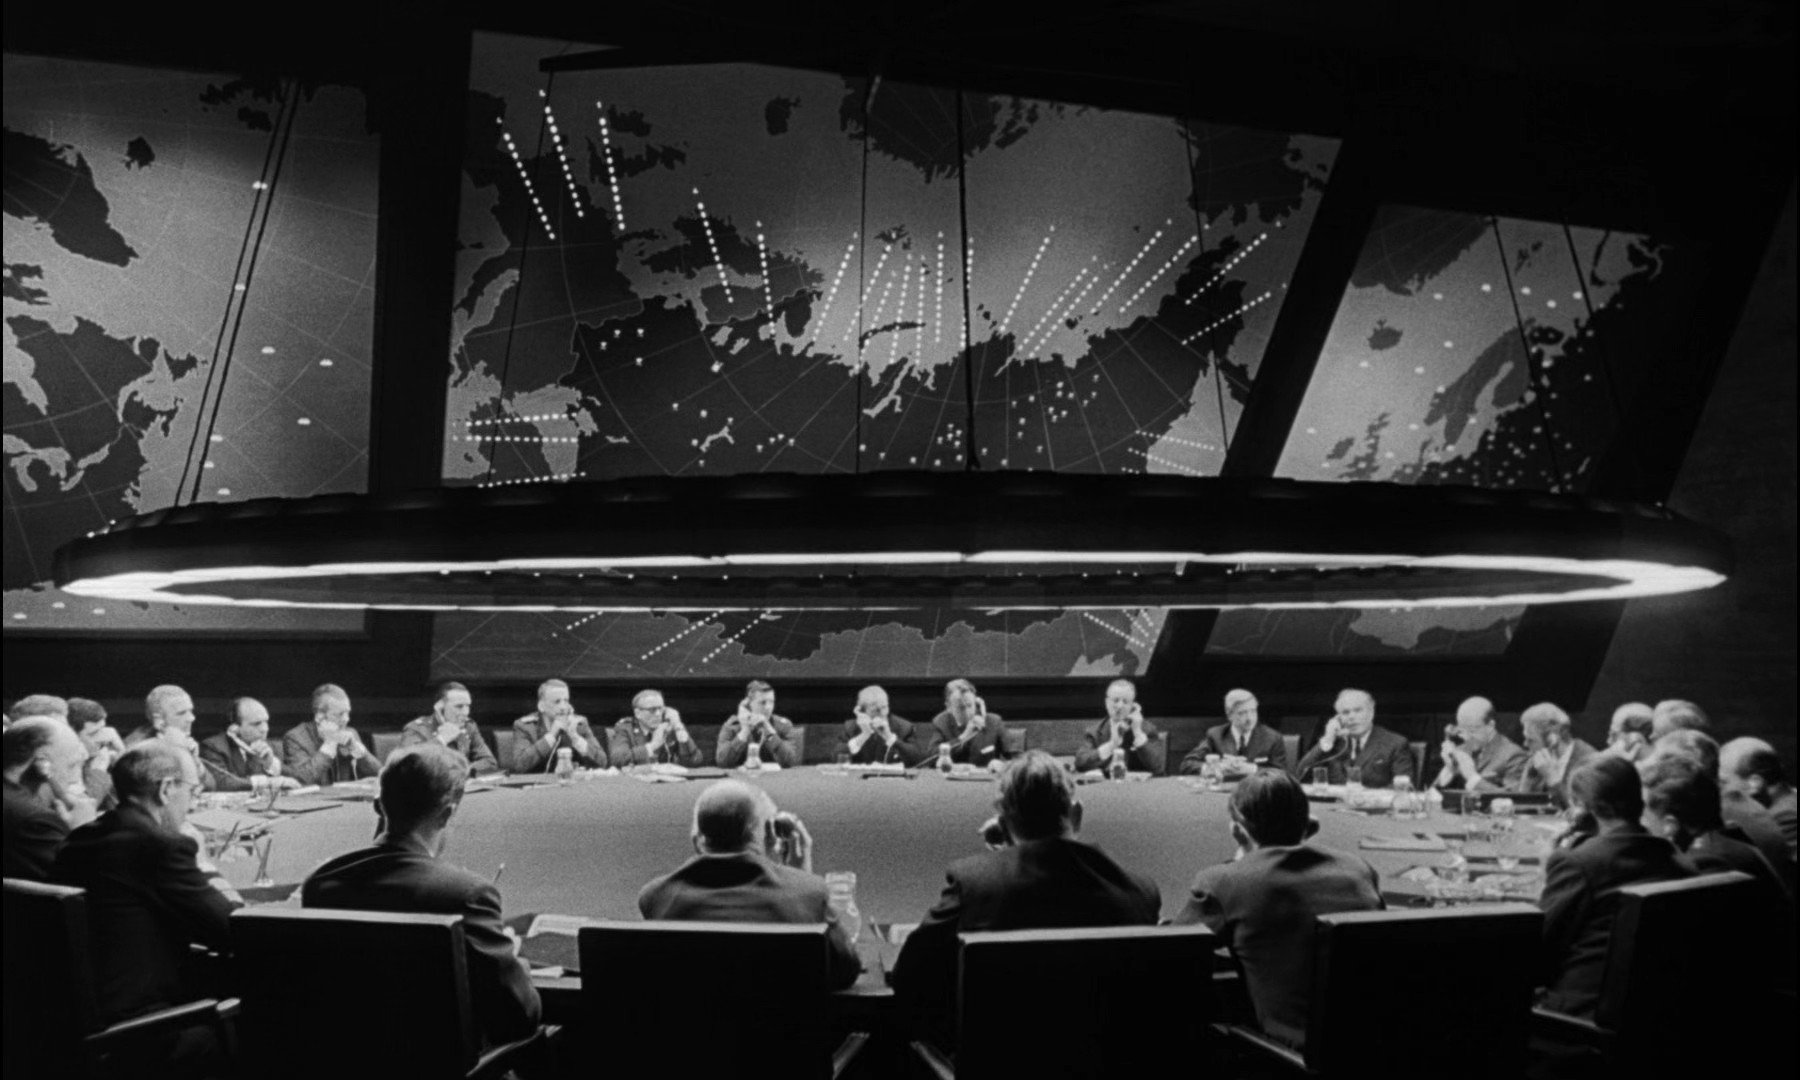 Dr. Strangelove   The War Room Making <i>... Love the Bomb</i>: Happy 50th, <i>Dr. Strangelove</i>